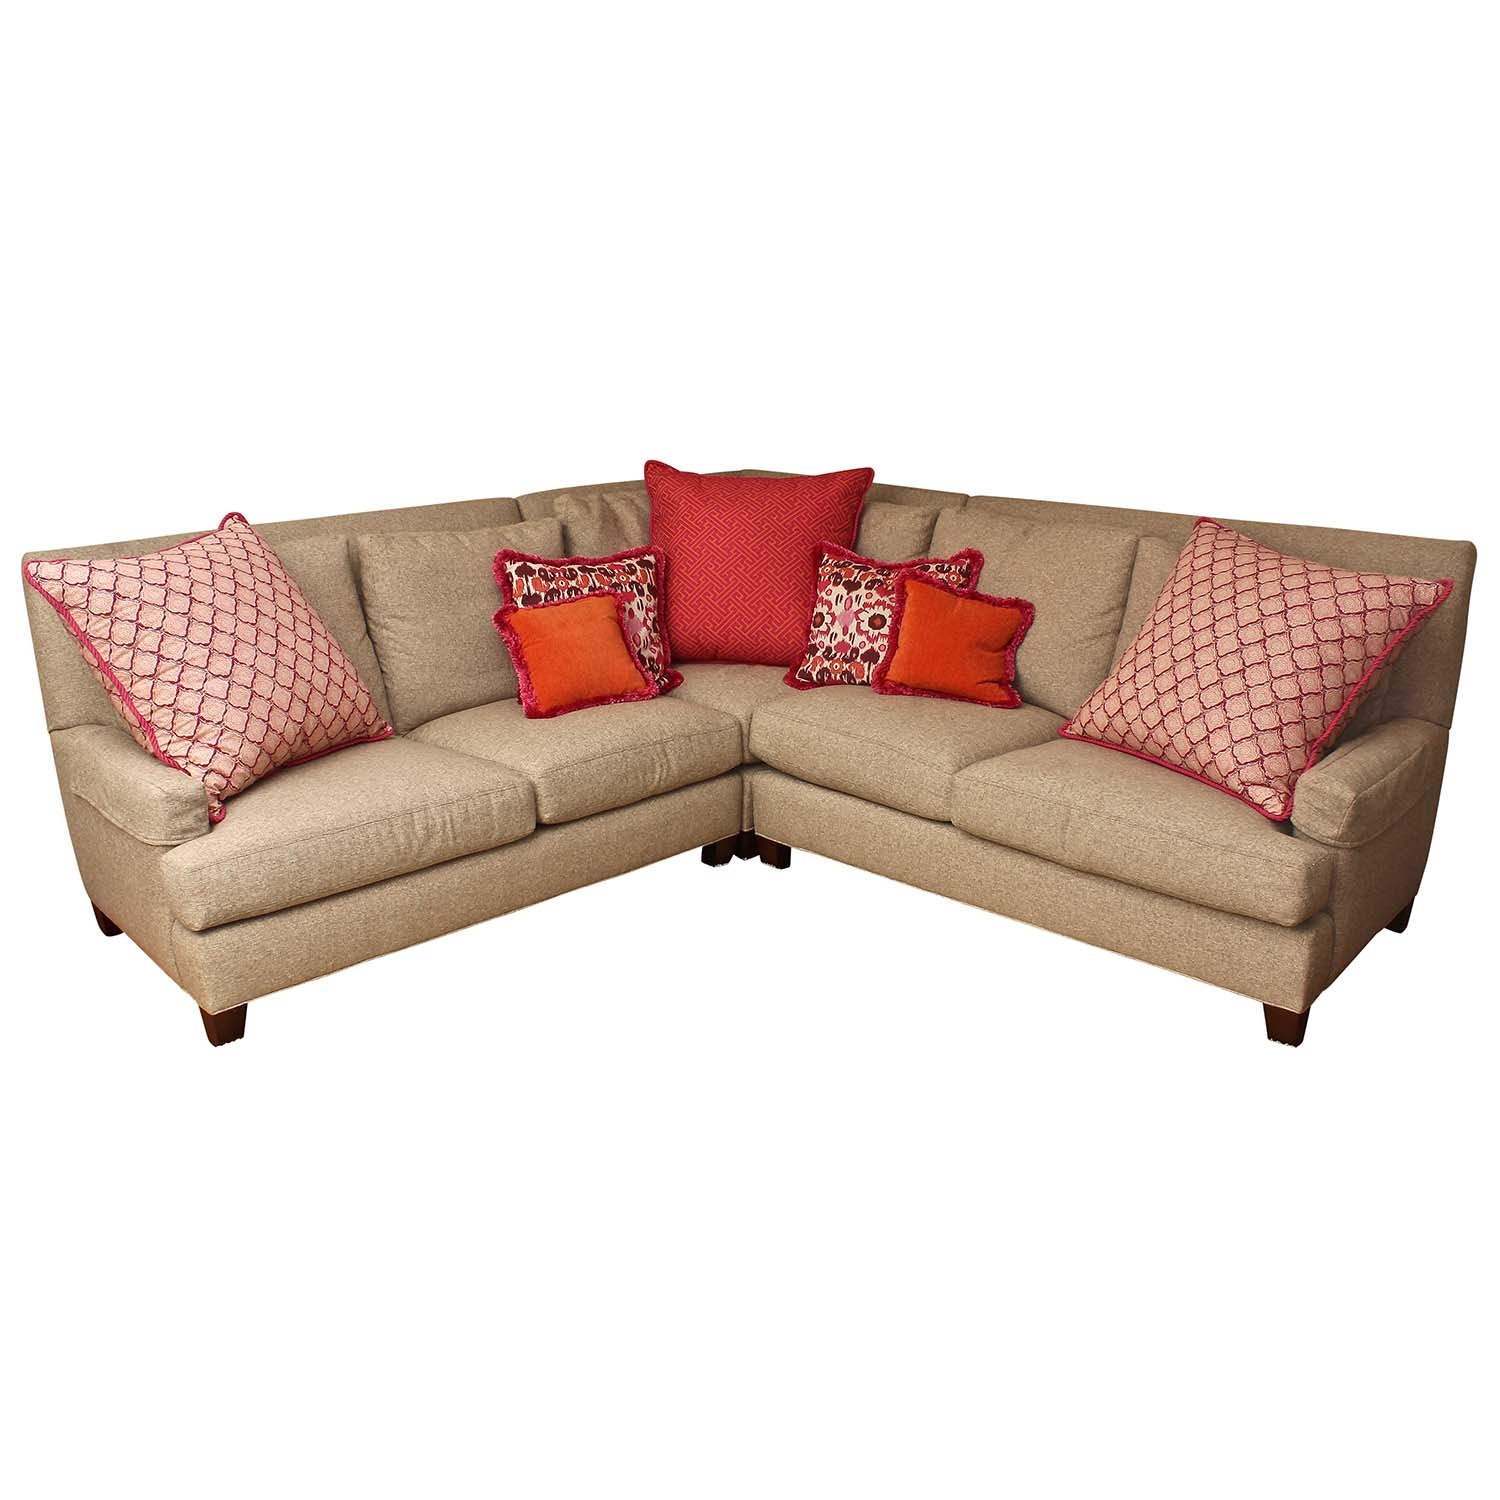 Lee Industries Sectional Sofa and Pillows